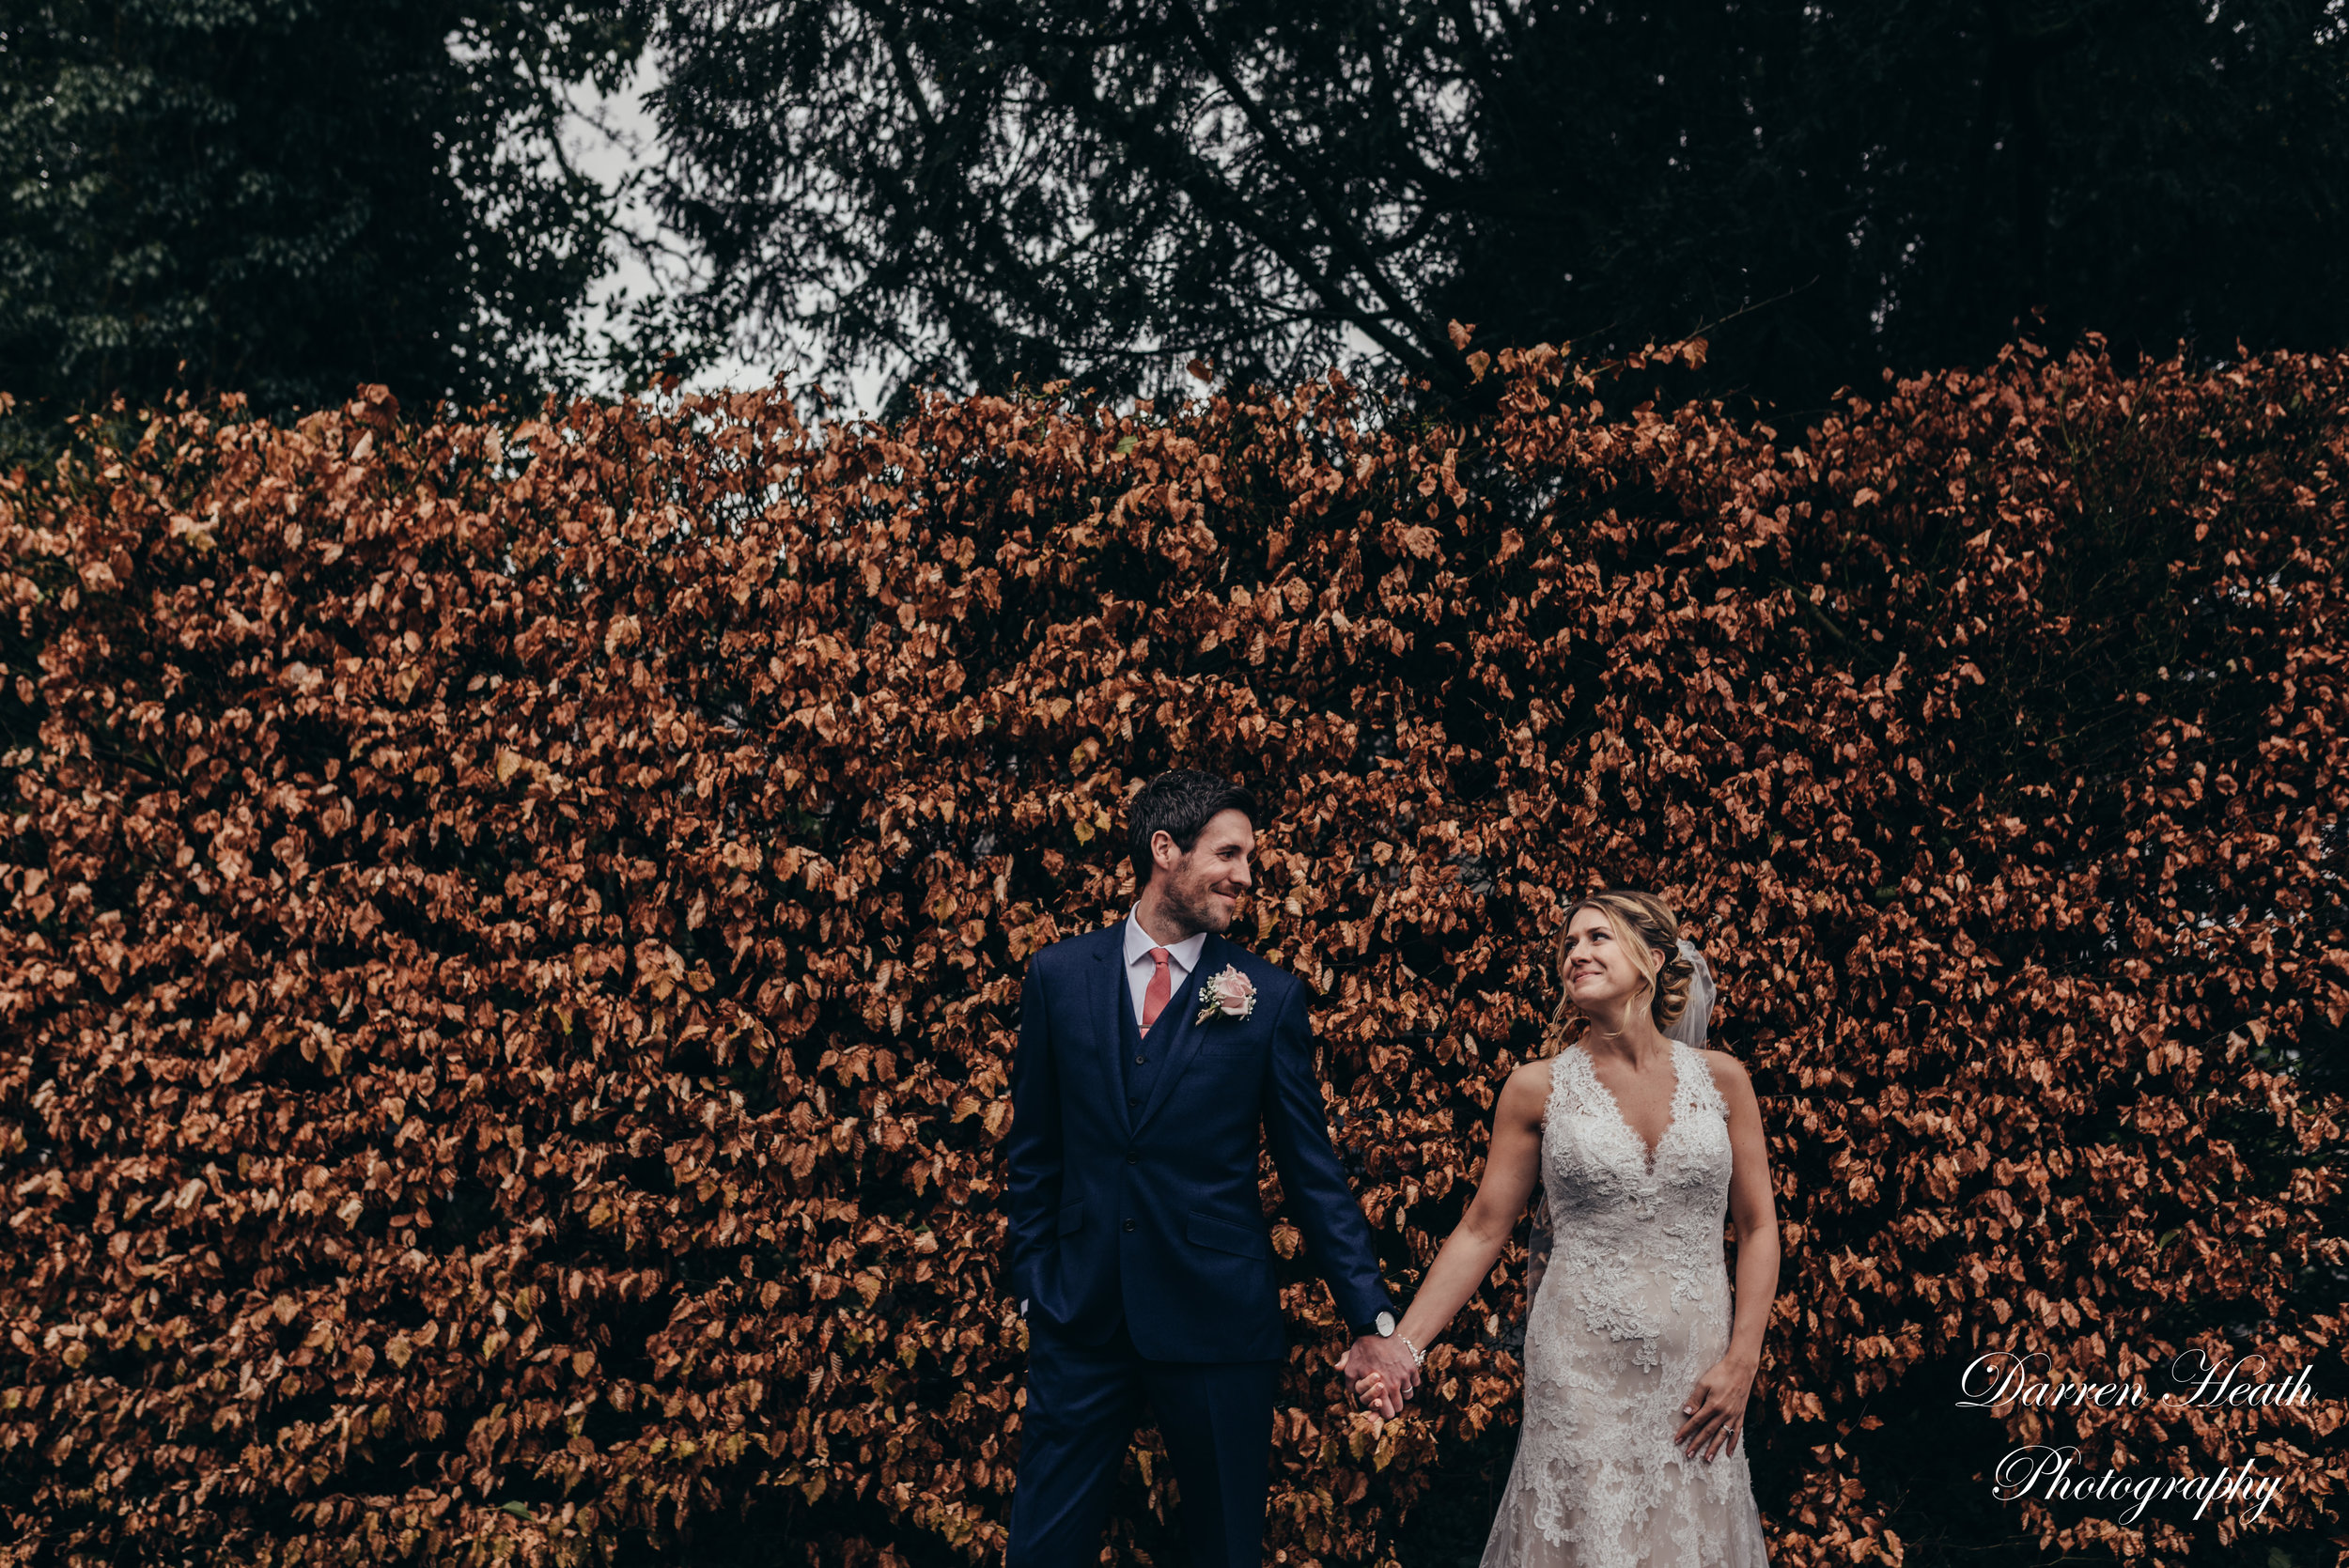 Autumnal Coloured leaves give back drop to bride and groom